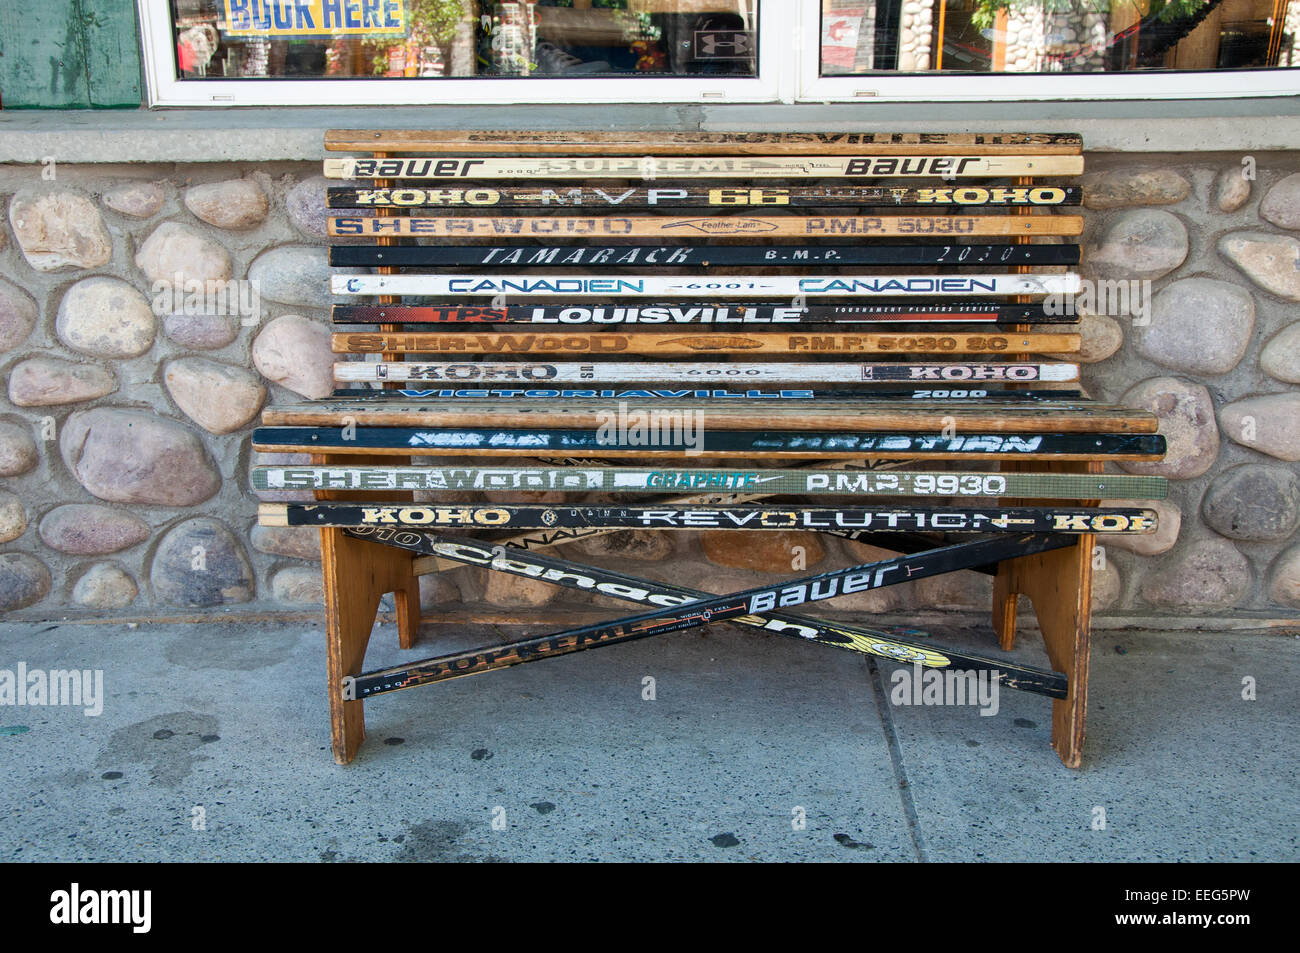 Bench made from old ice hockey sticks - Jasper, Canada - Stock Image